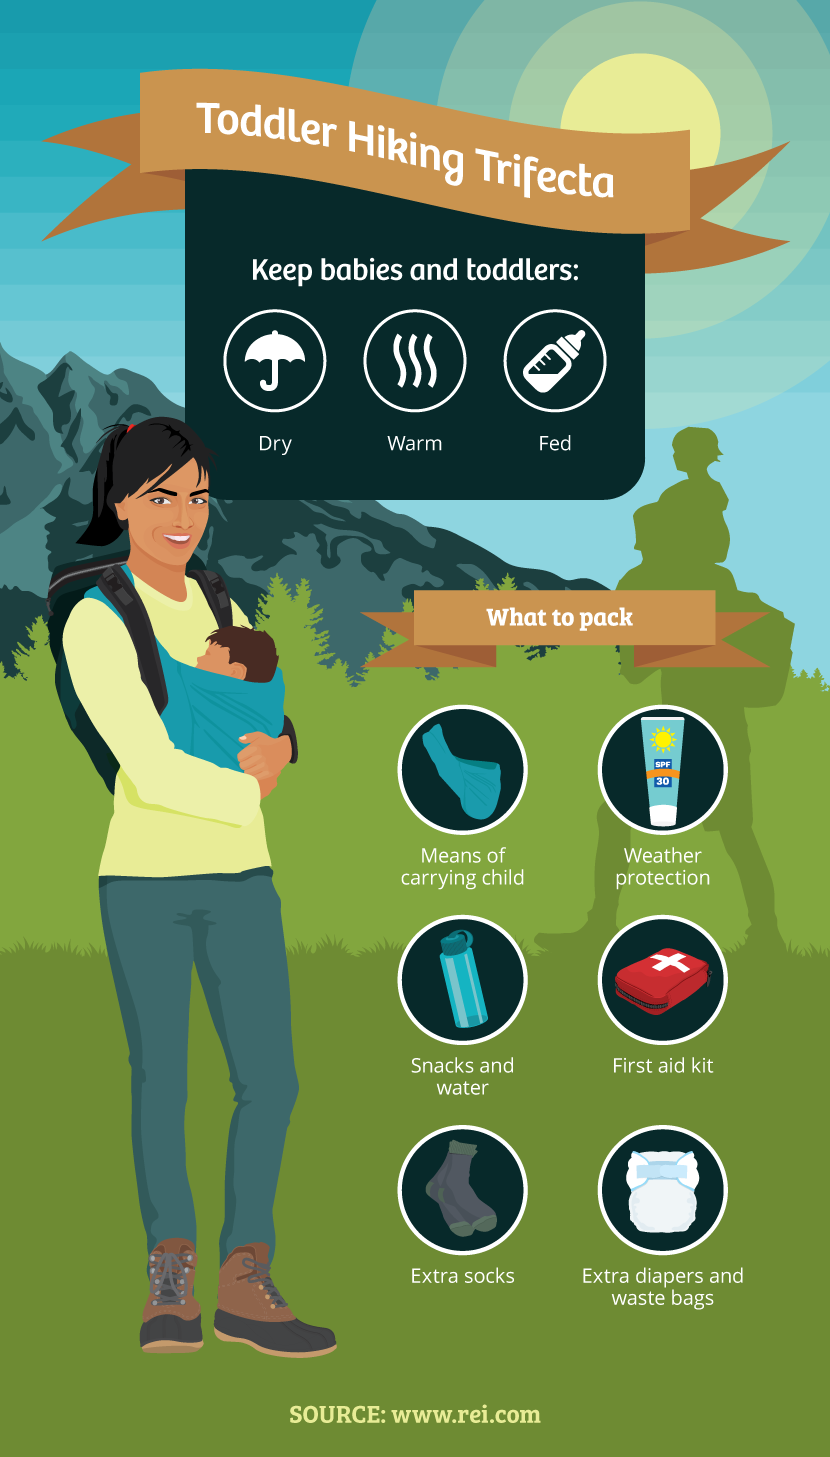 Toddler Hiking Trifecta - The Benefits of Hiking with Kids